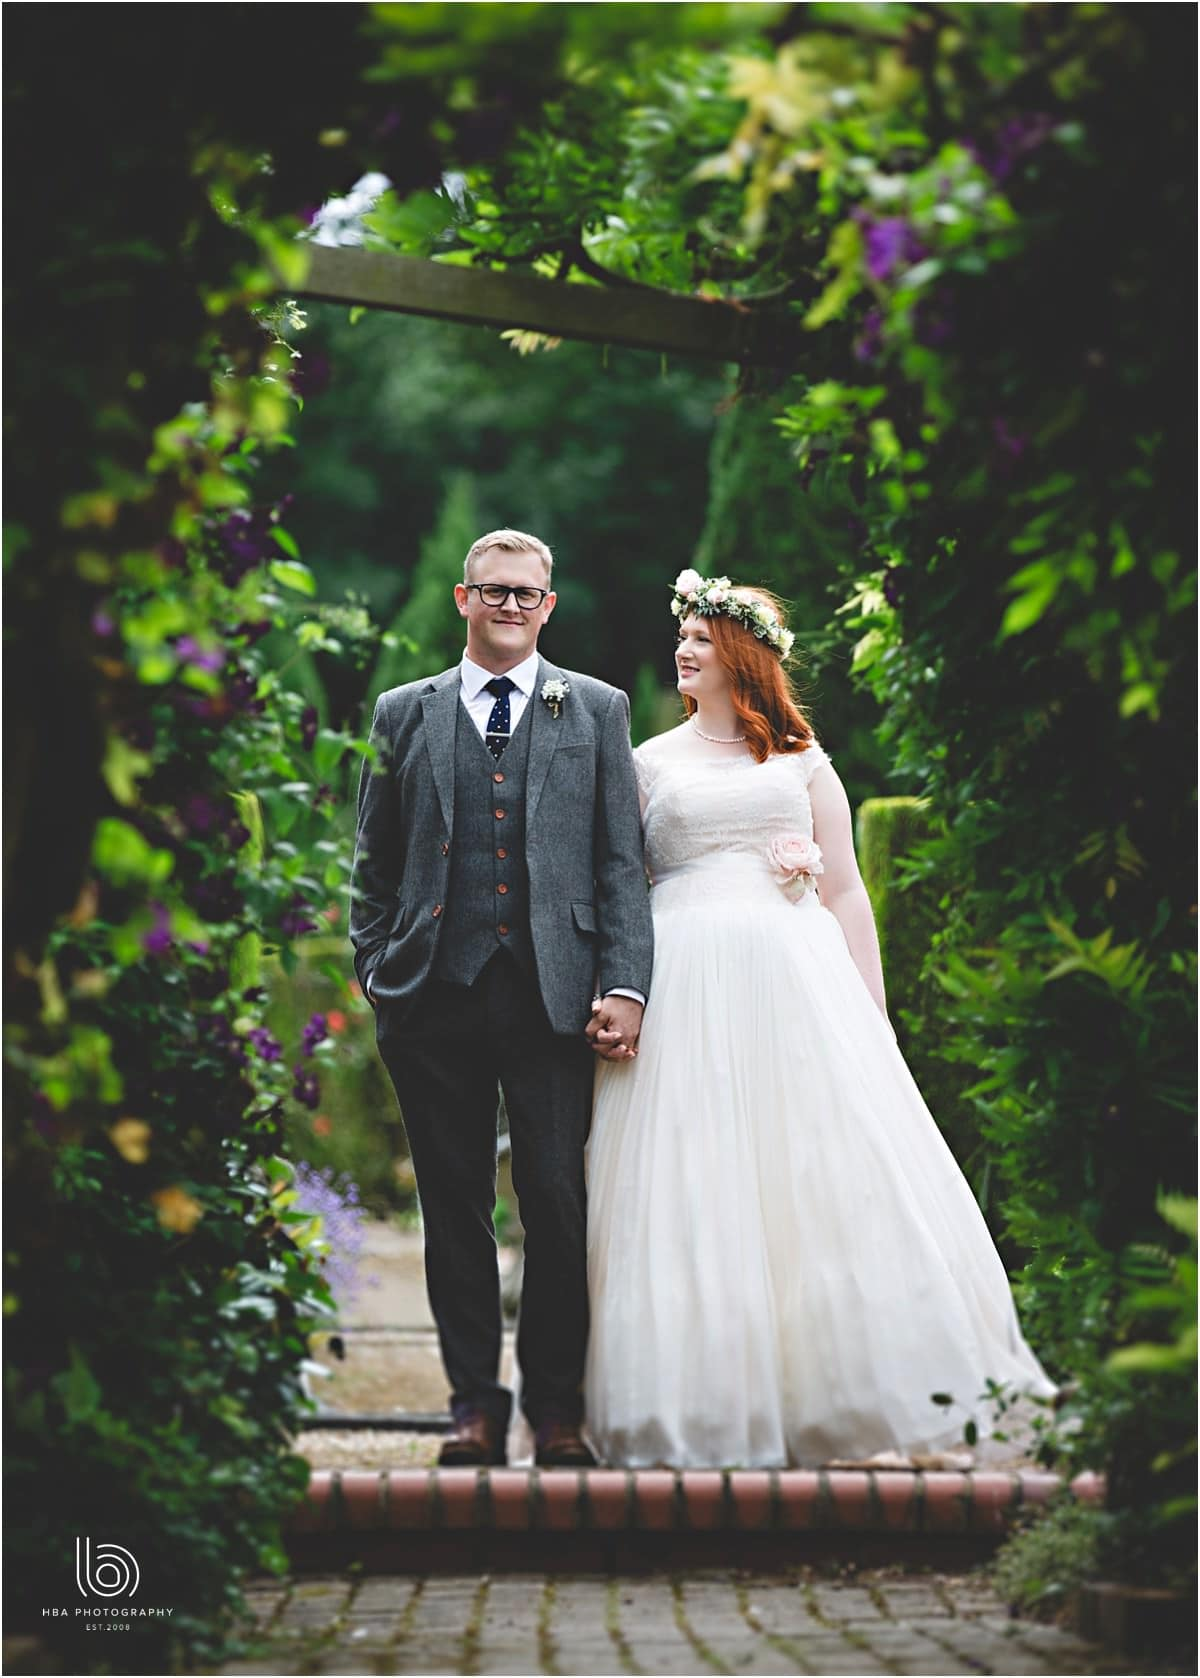 the bride and groom surrounded by green leaves